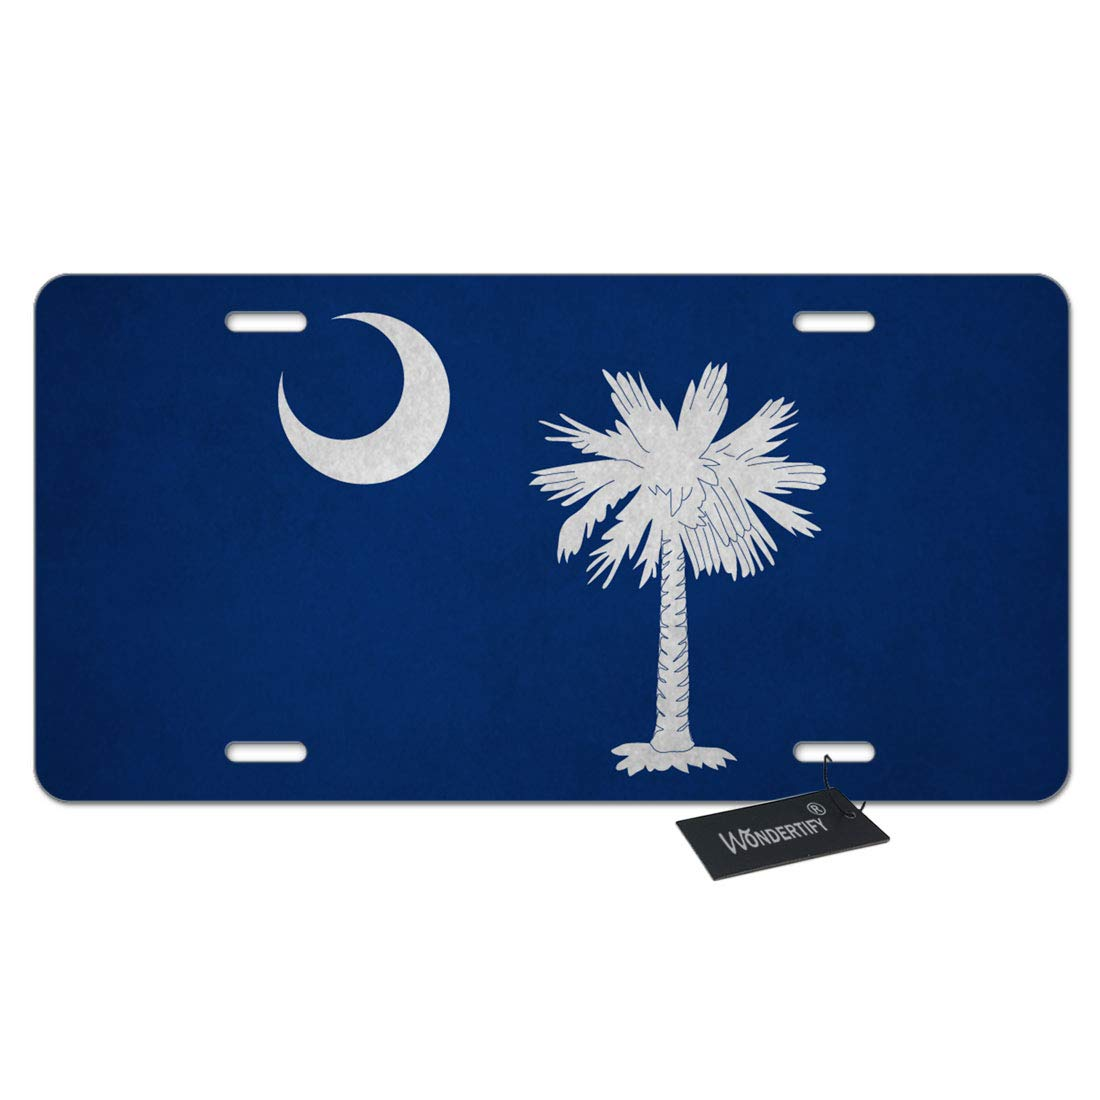 4 Holes WONDERTIFY License Plate Us Navy United States Navy Dark Blue Pattern Decorative Car Front License Plate,Vanity Tag,Metal Car Plate,Aluminum Novelty License Plate 6 X 12 Inch